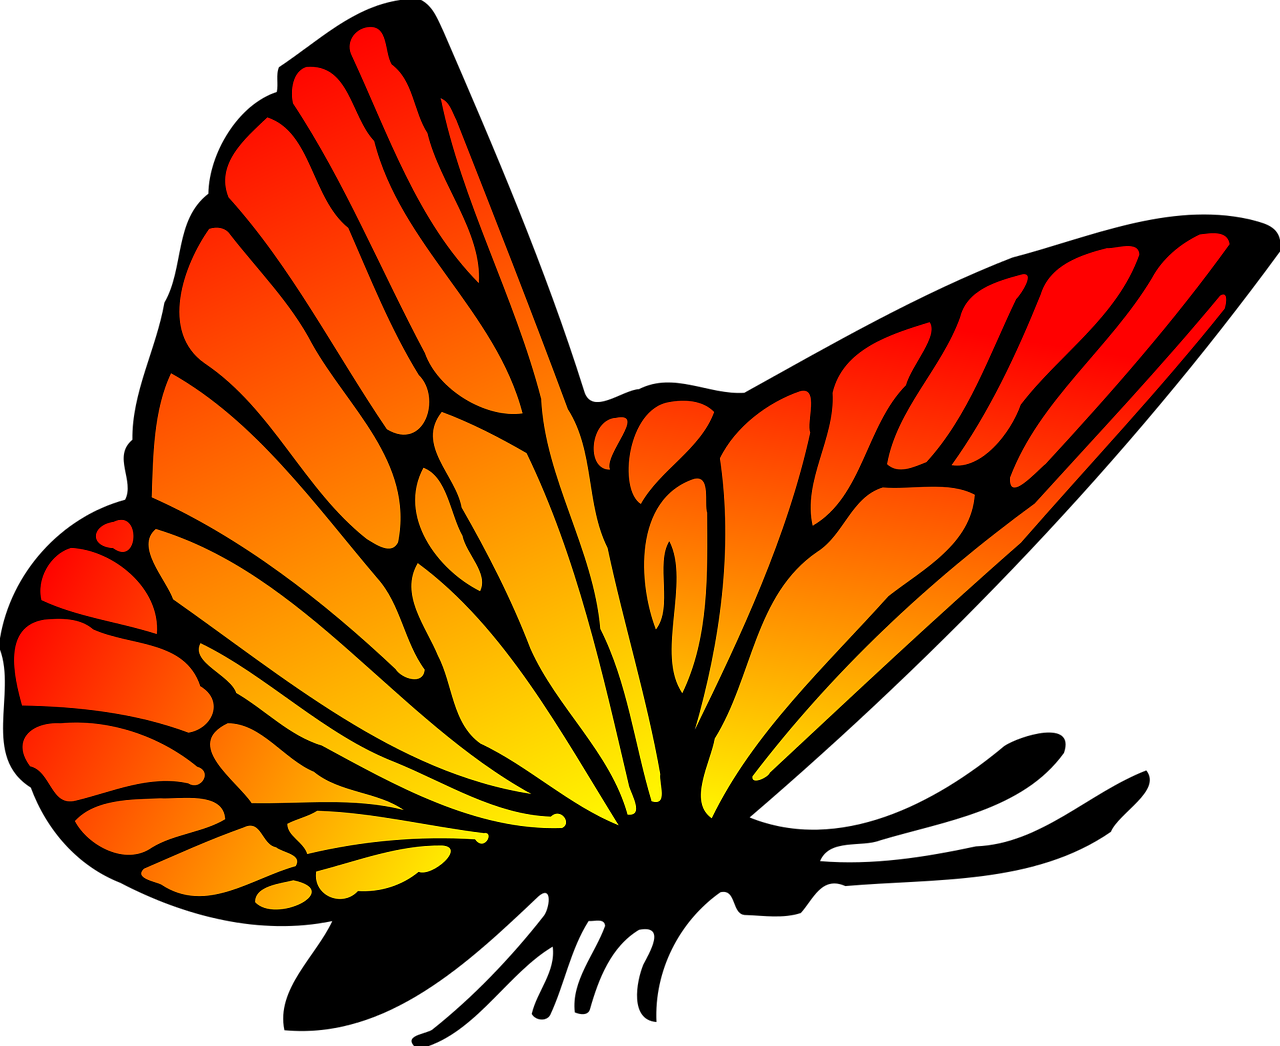 HD Animal Butterflies Butterfly Png Image.